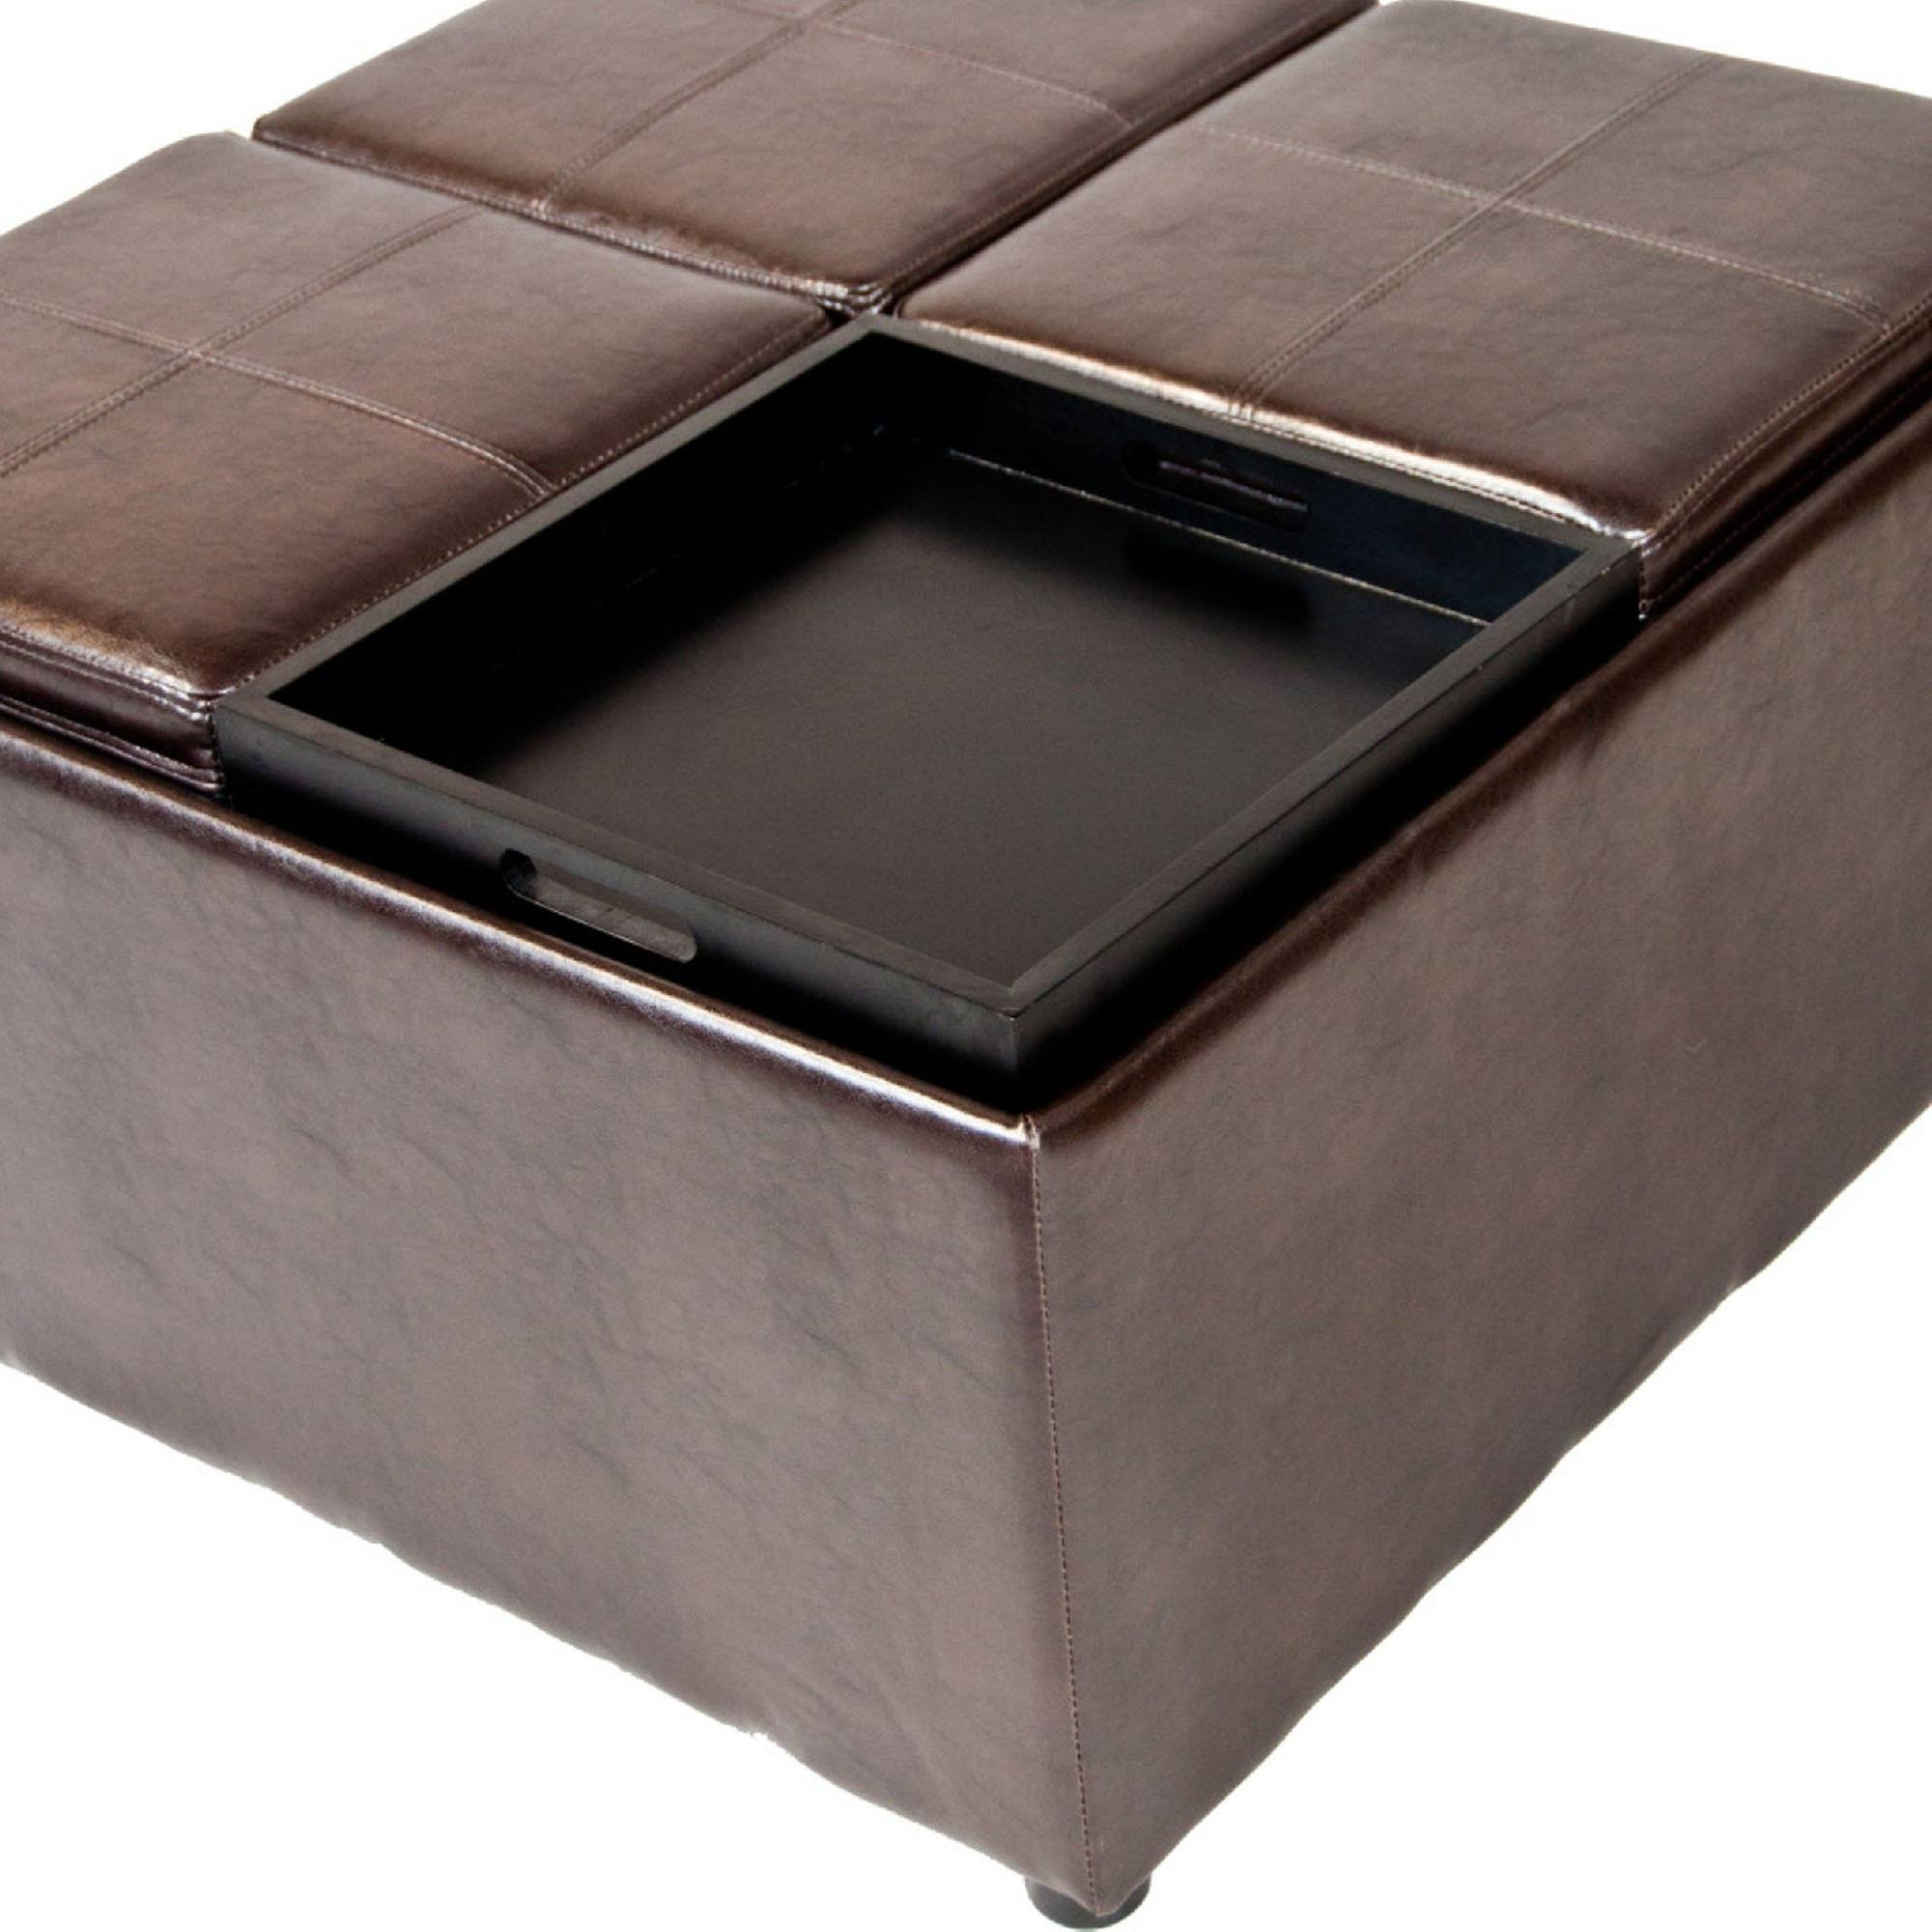 Furniture Home : Contemporary Round Coffee Tables With Storage within Round Coffee Table Storages (Image 14 of 30)